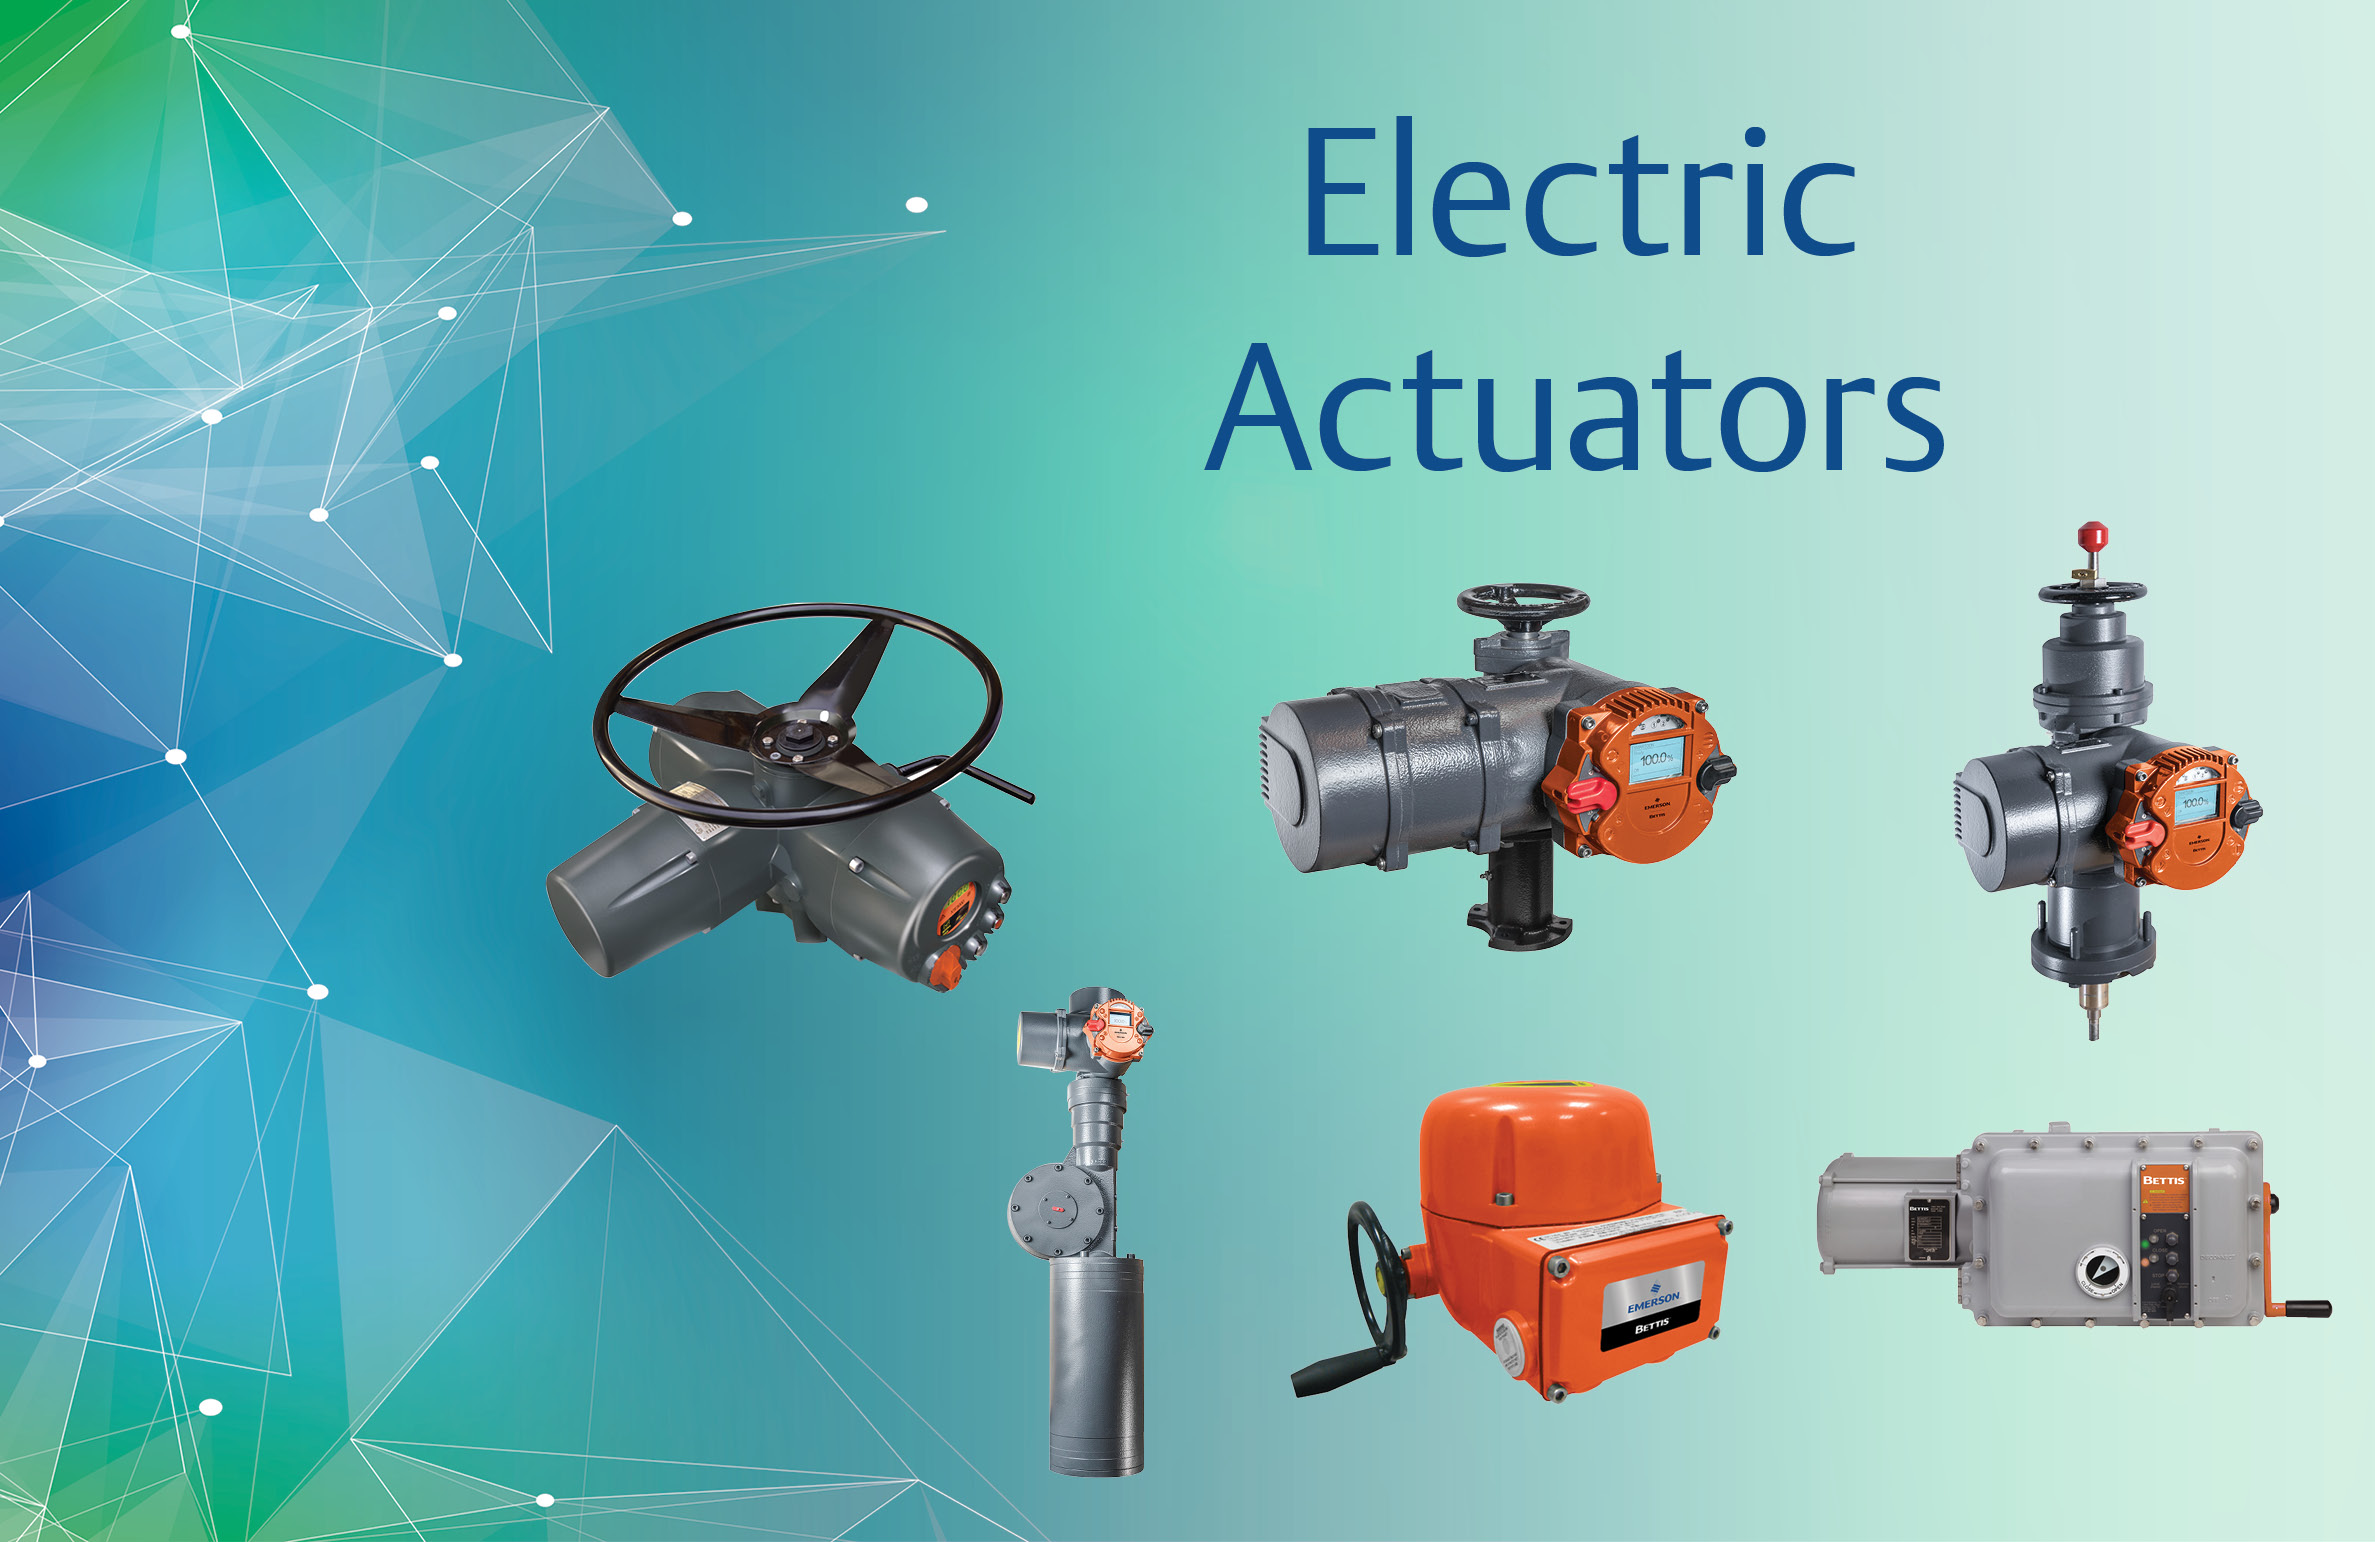 Eliminate Emissions While Increasing Safety and Reliability with Electric Actuators